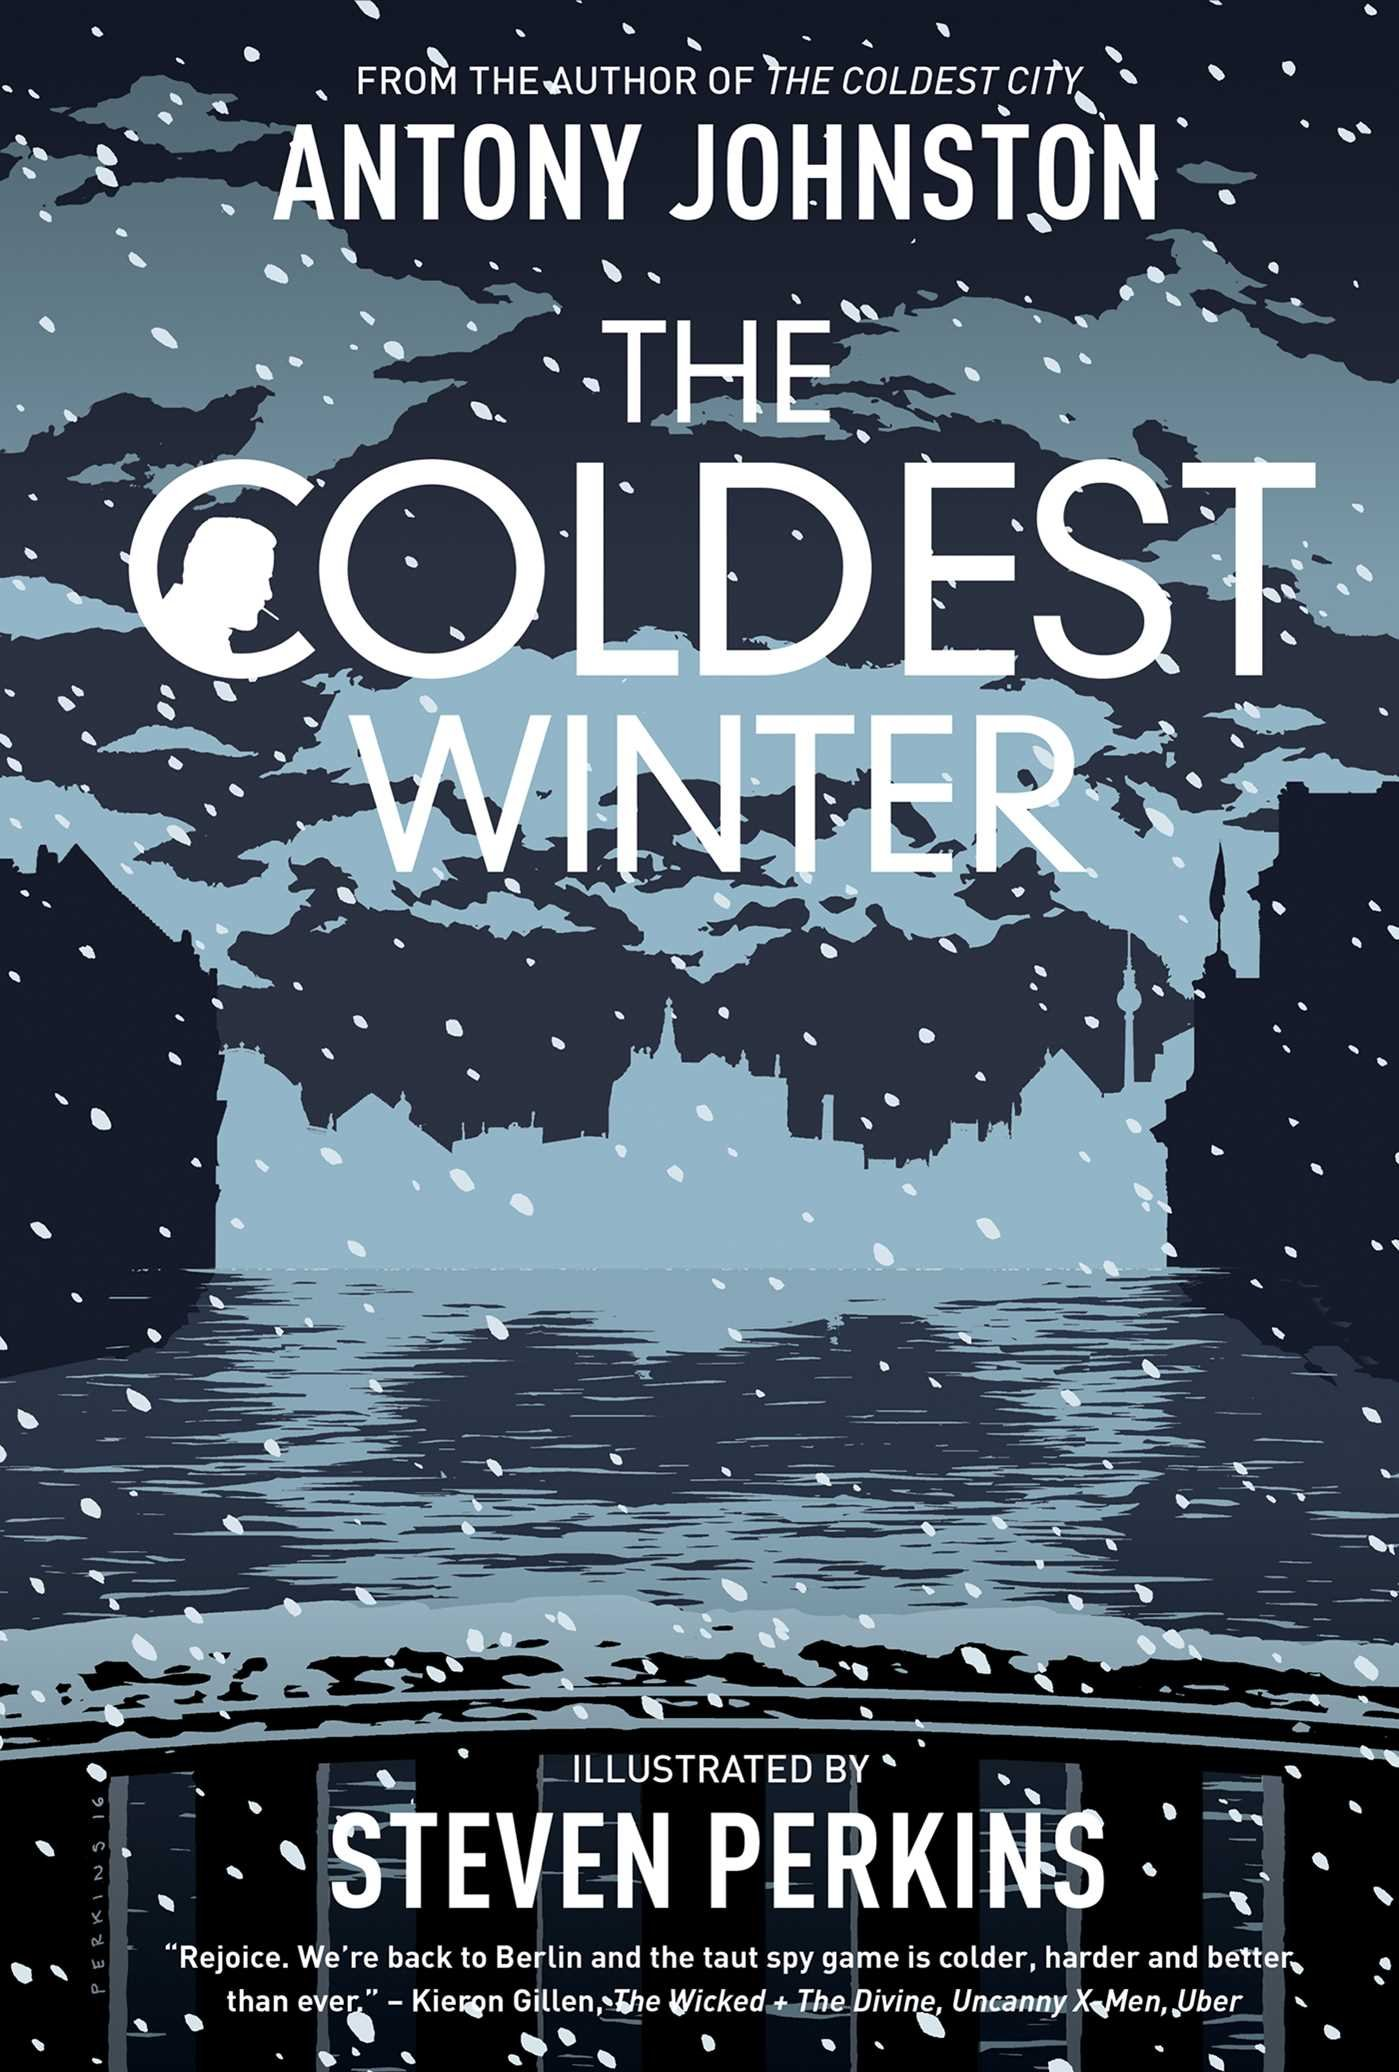 The Coldest Winter by Oni Press